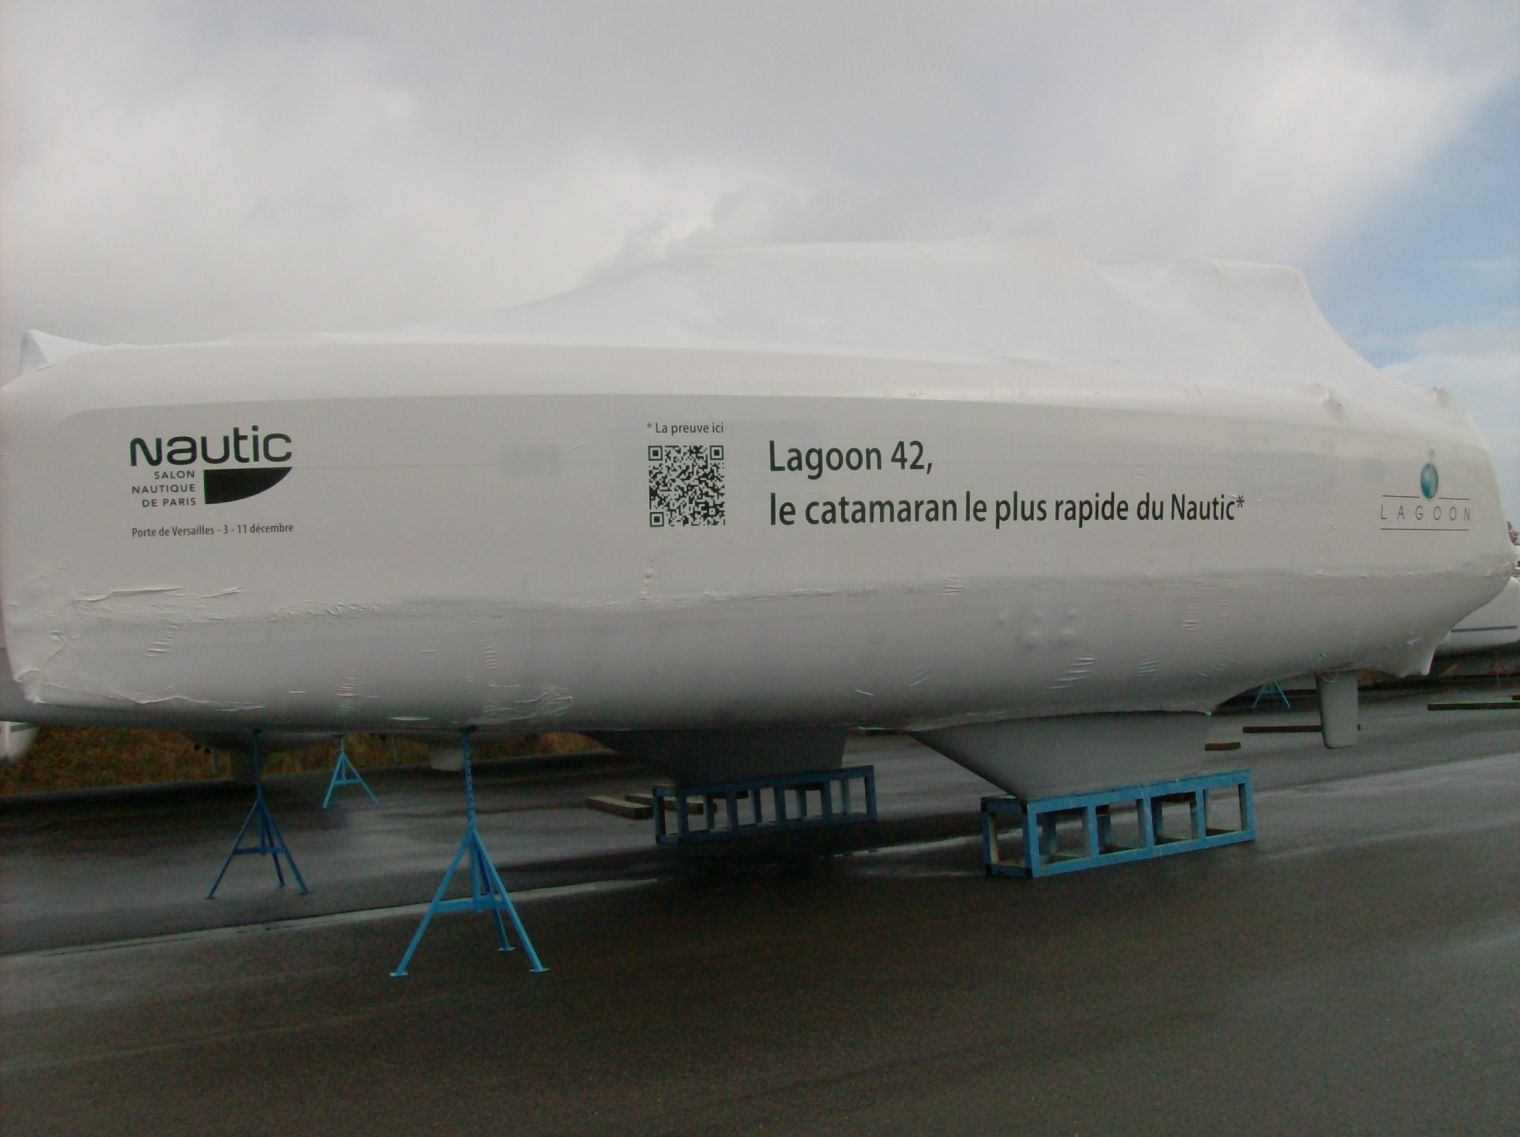 42 : le catamaran le plus rapide du Nautic de Paris !